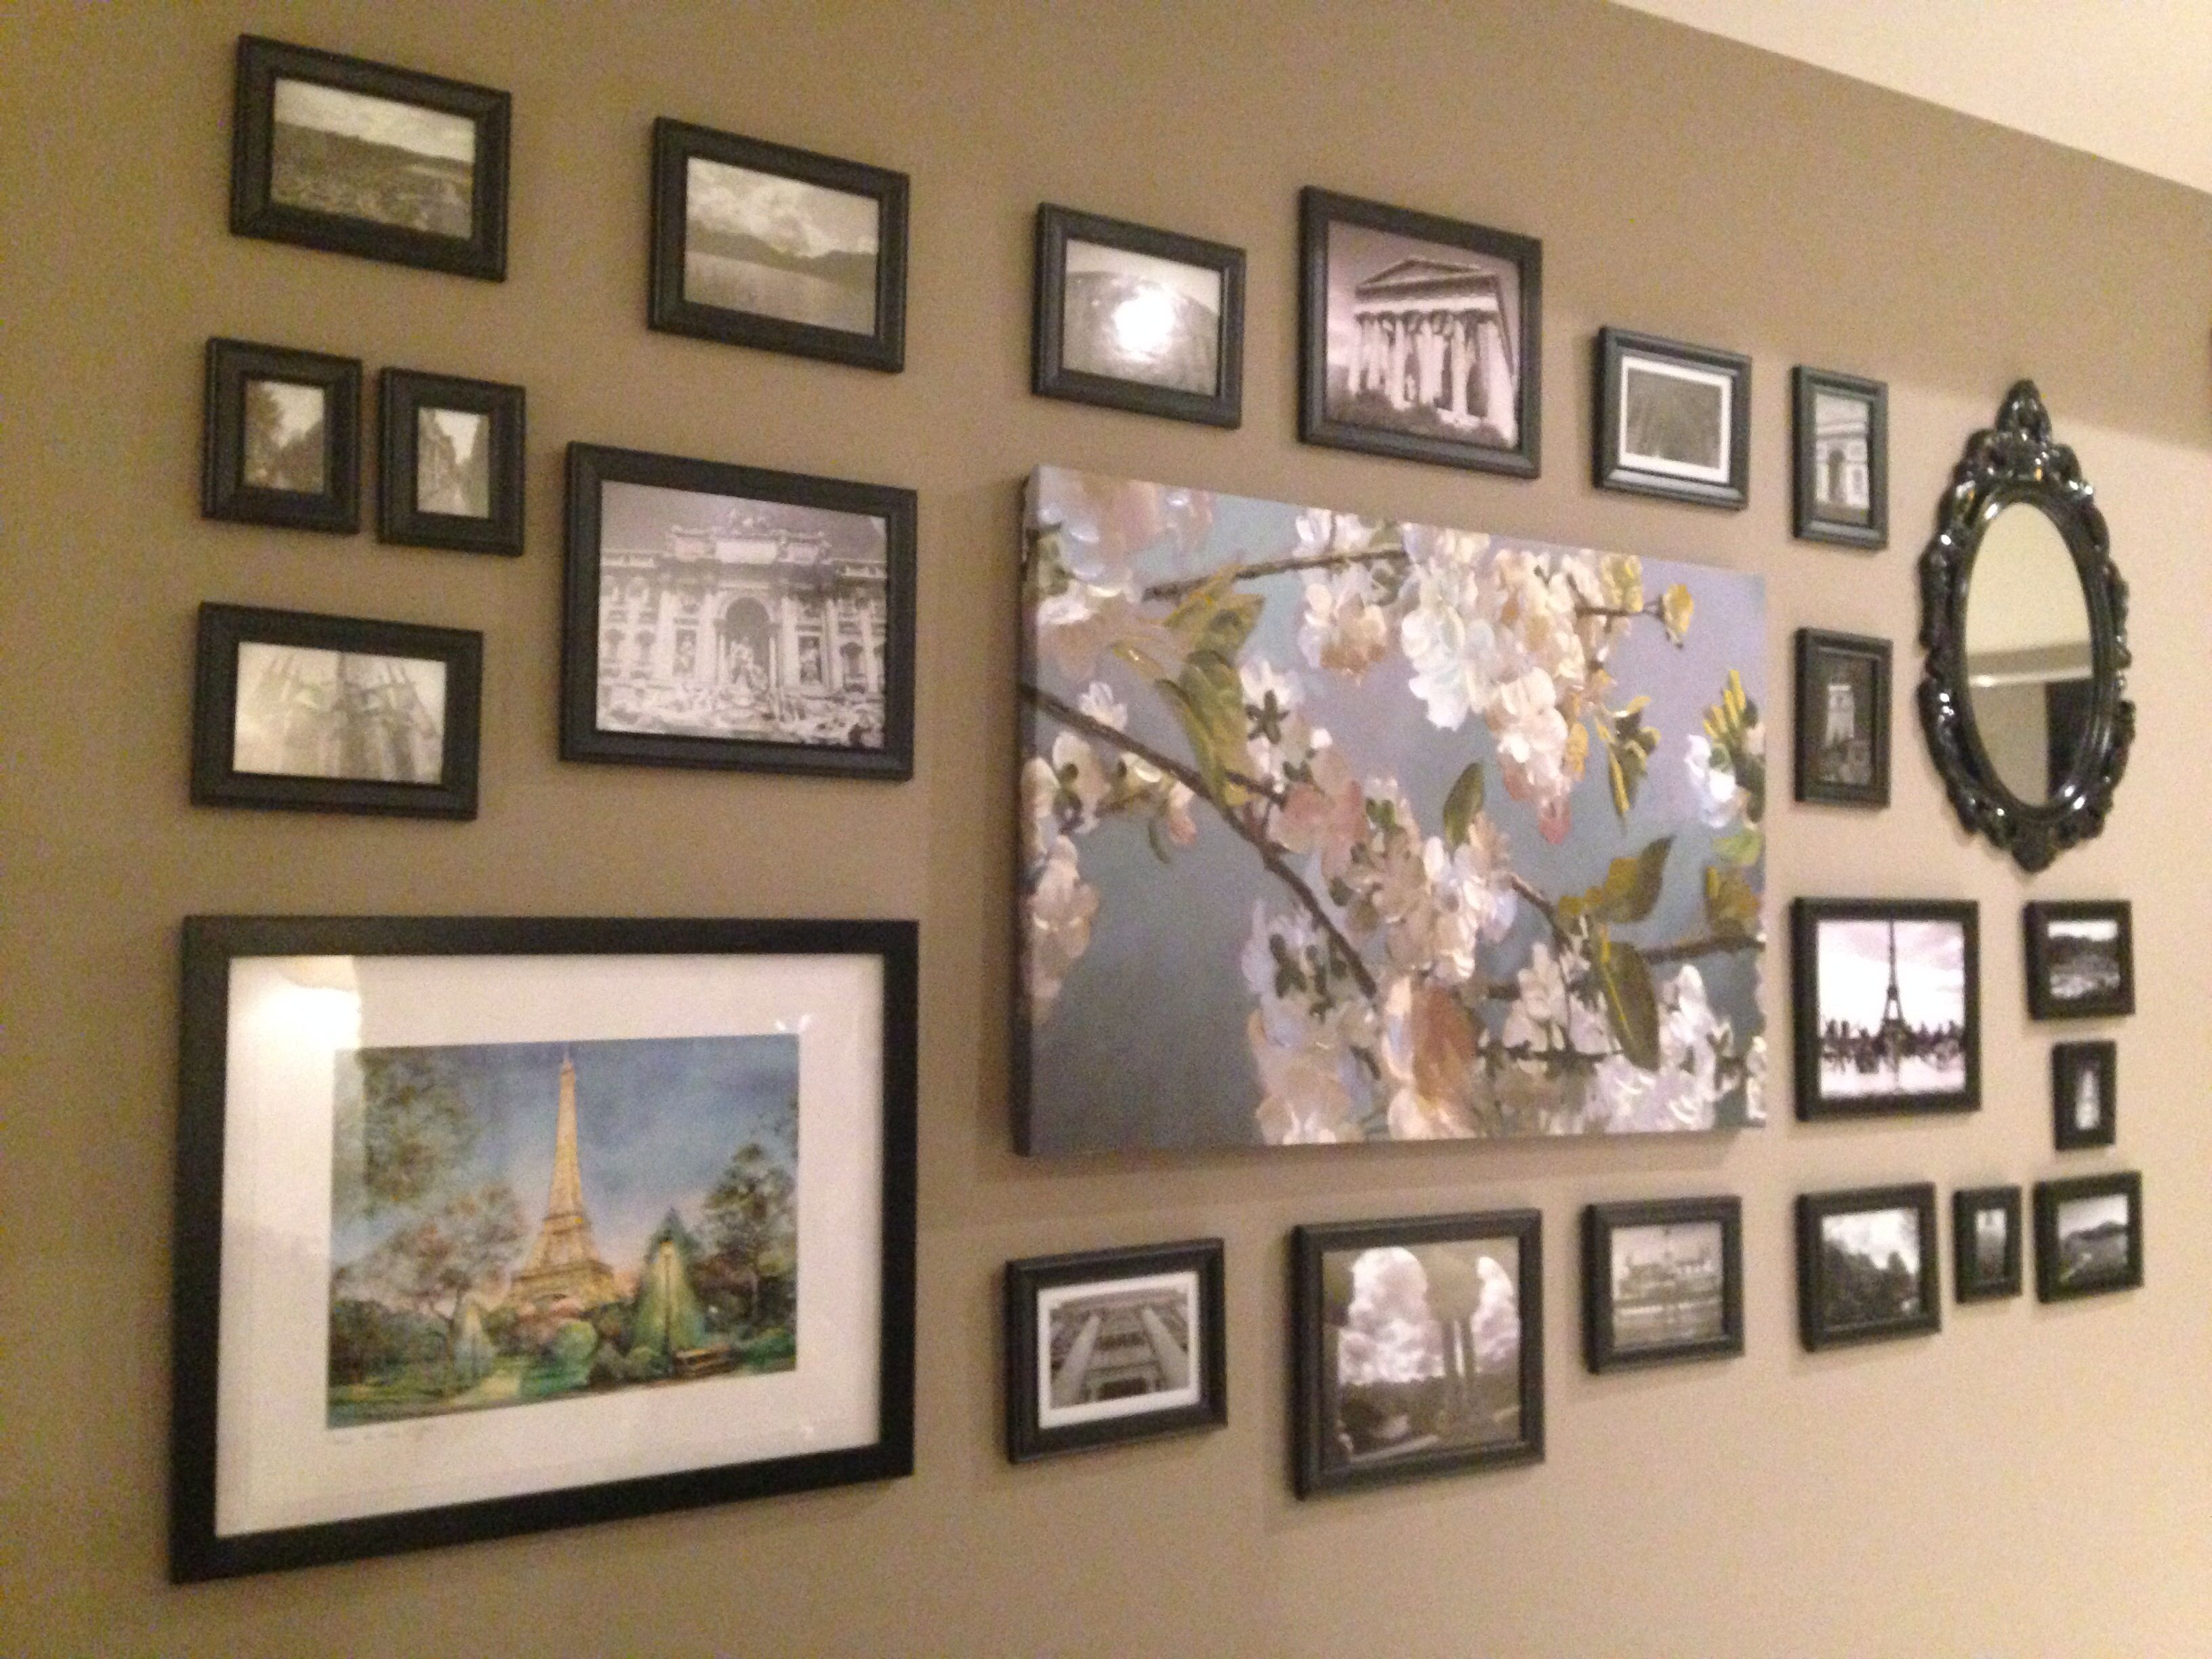 my finished wall photo collage diy pinterest. Black Bedroom Furniture Sets. Home Design Ideas